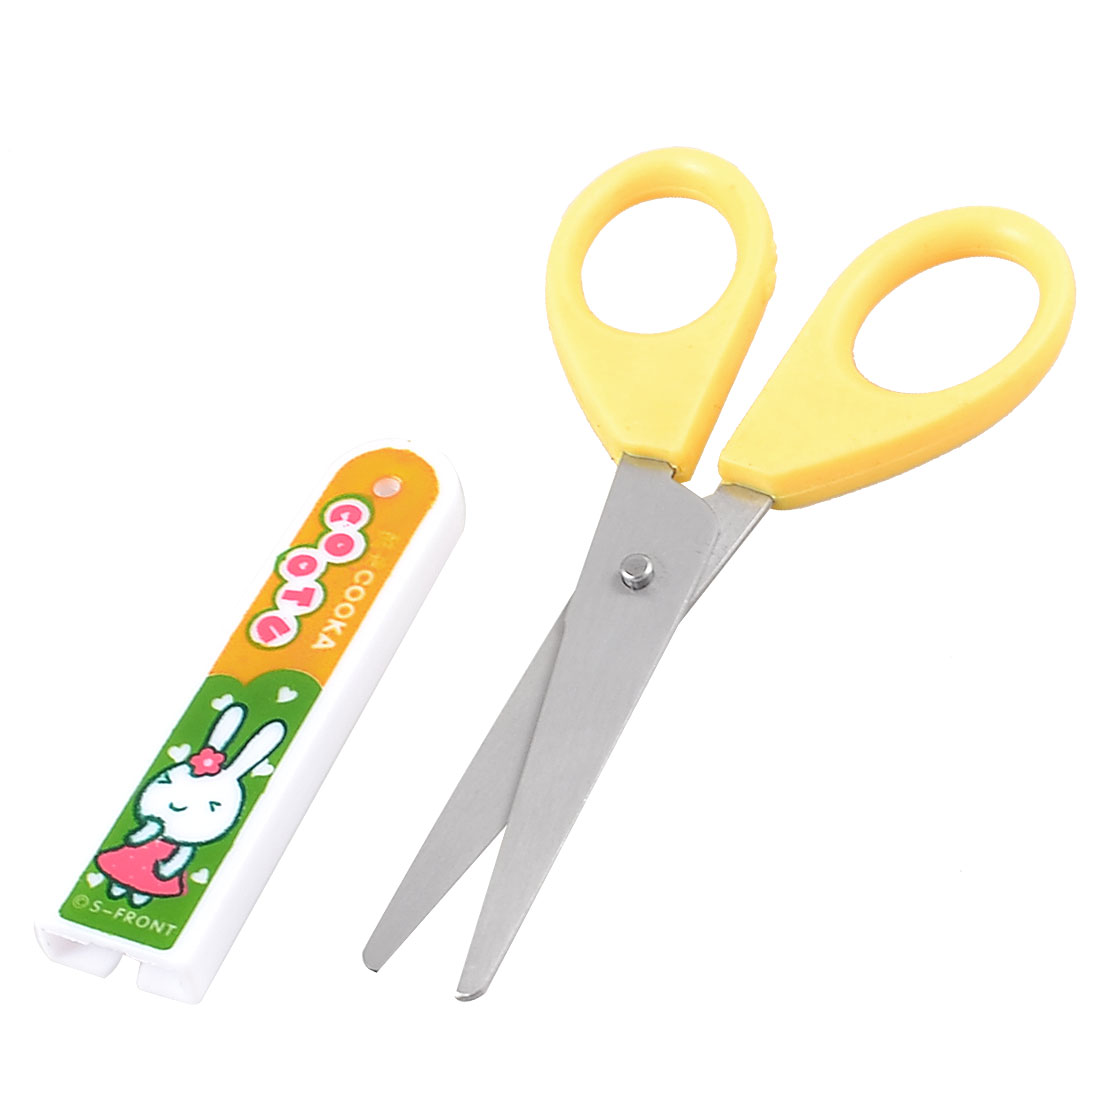 "Students Paper Cutting Yellow Plastic Handgrip Scissors 4.1"" Length w Cover"